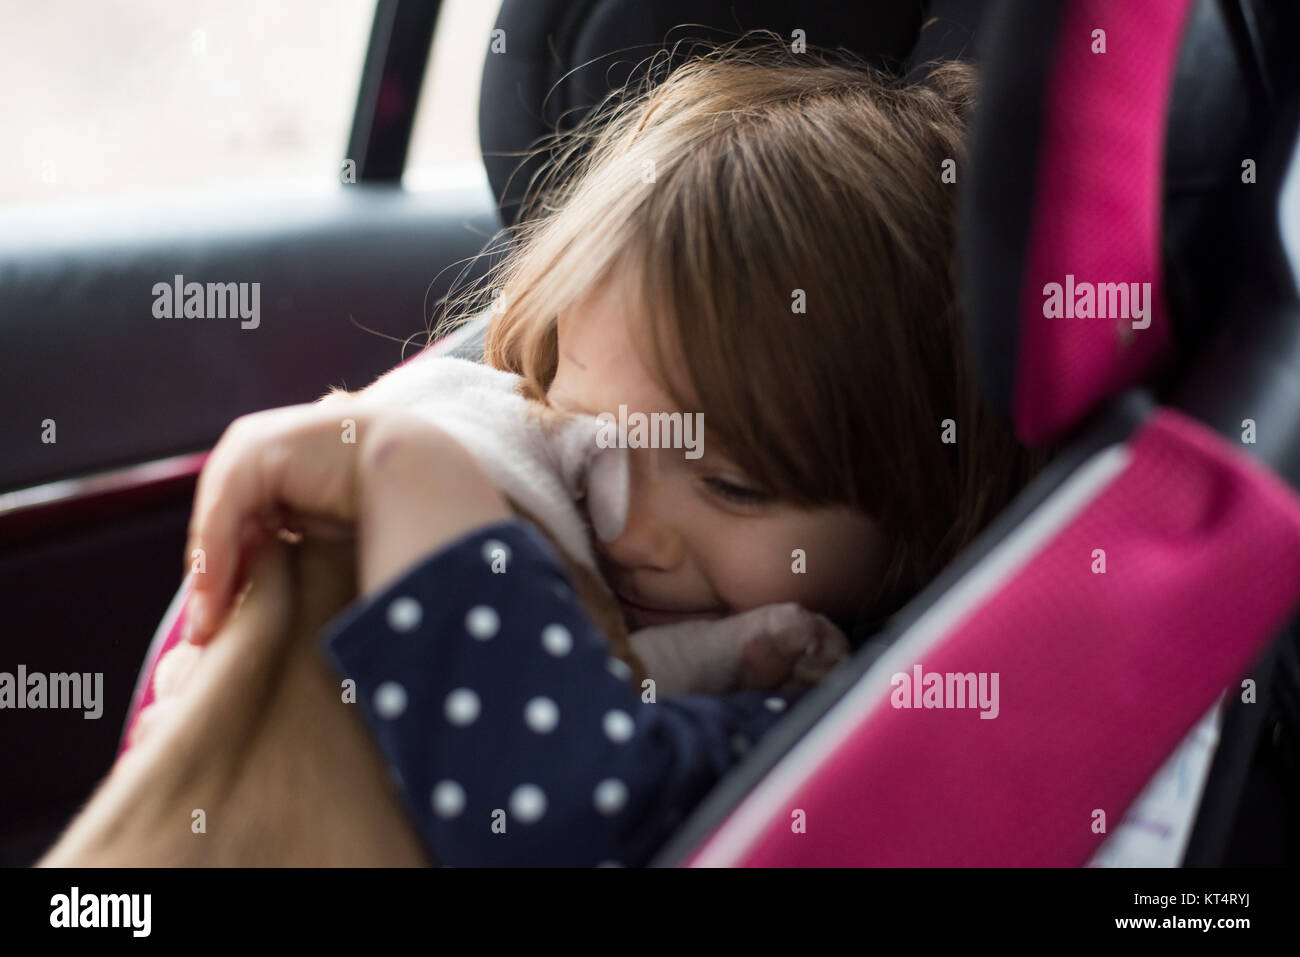 A toddler girl hugging a six week old puppy while sitting in a car seat. - Stock Image